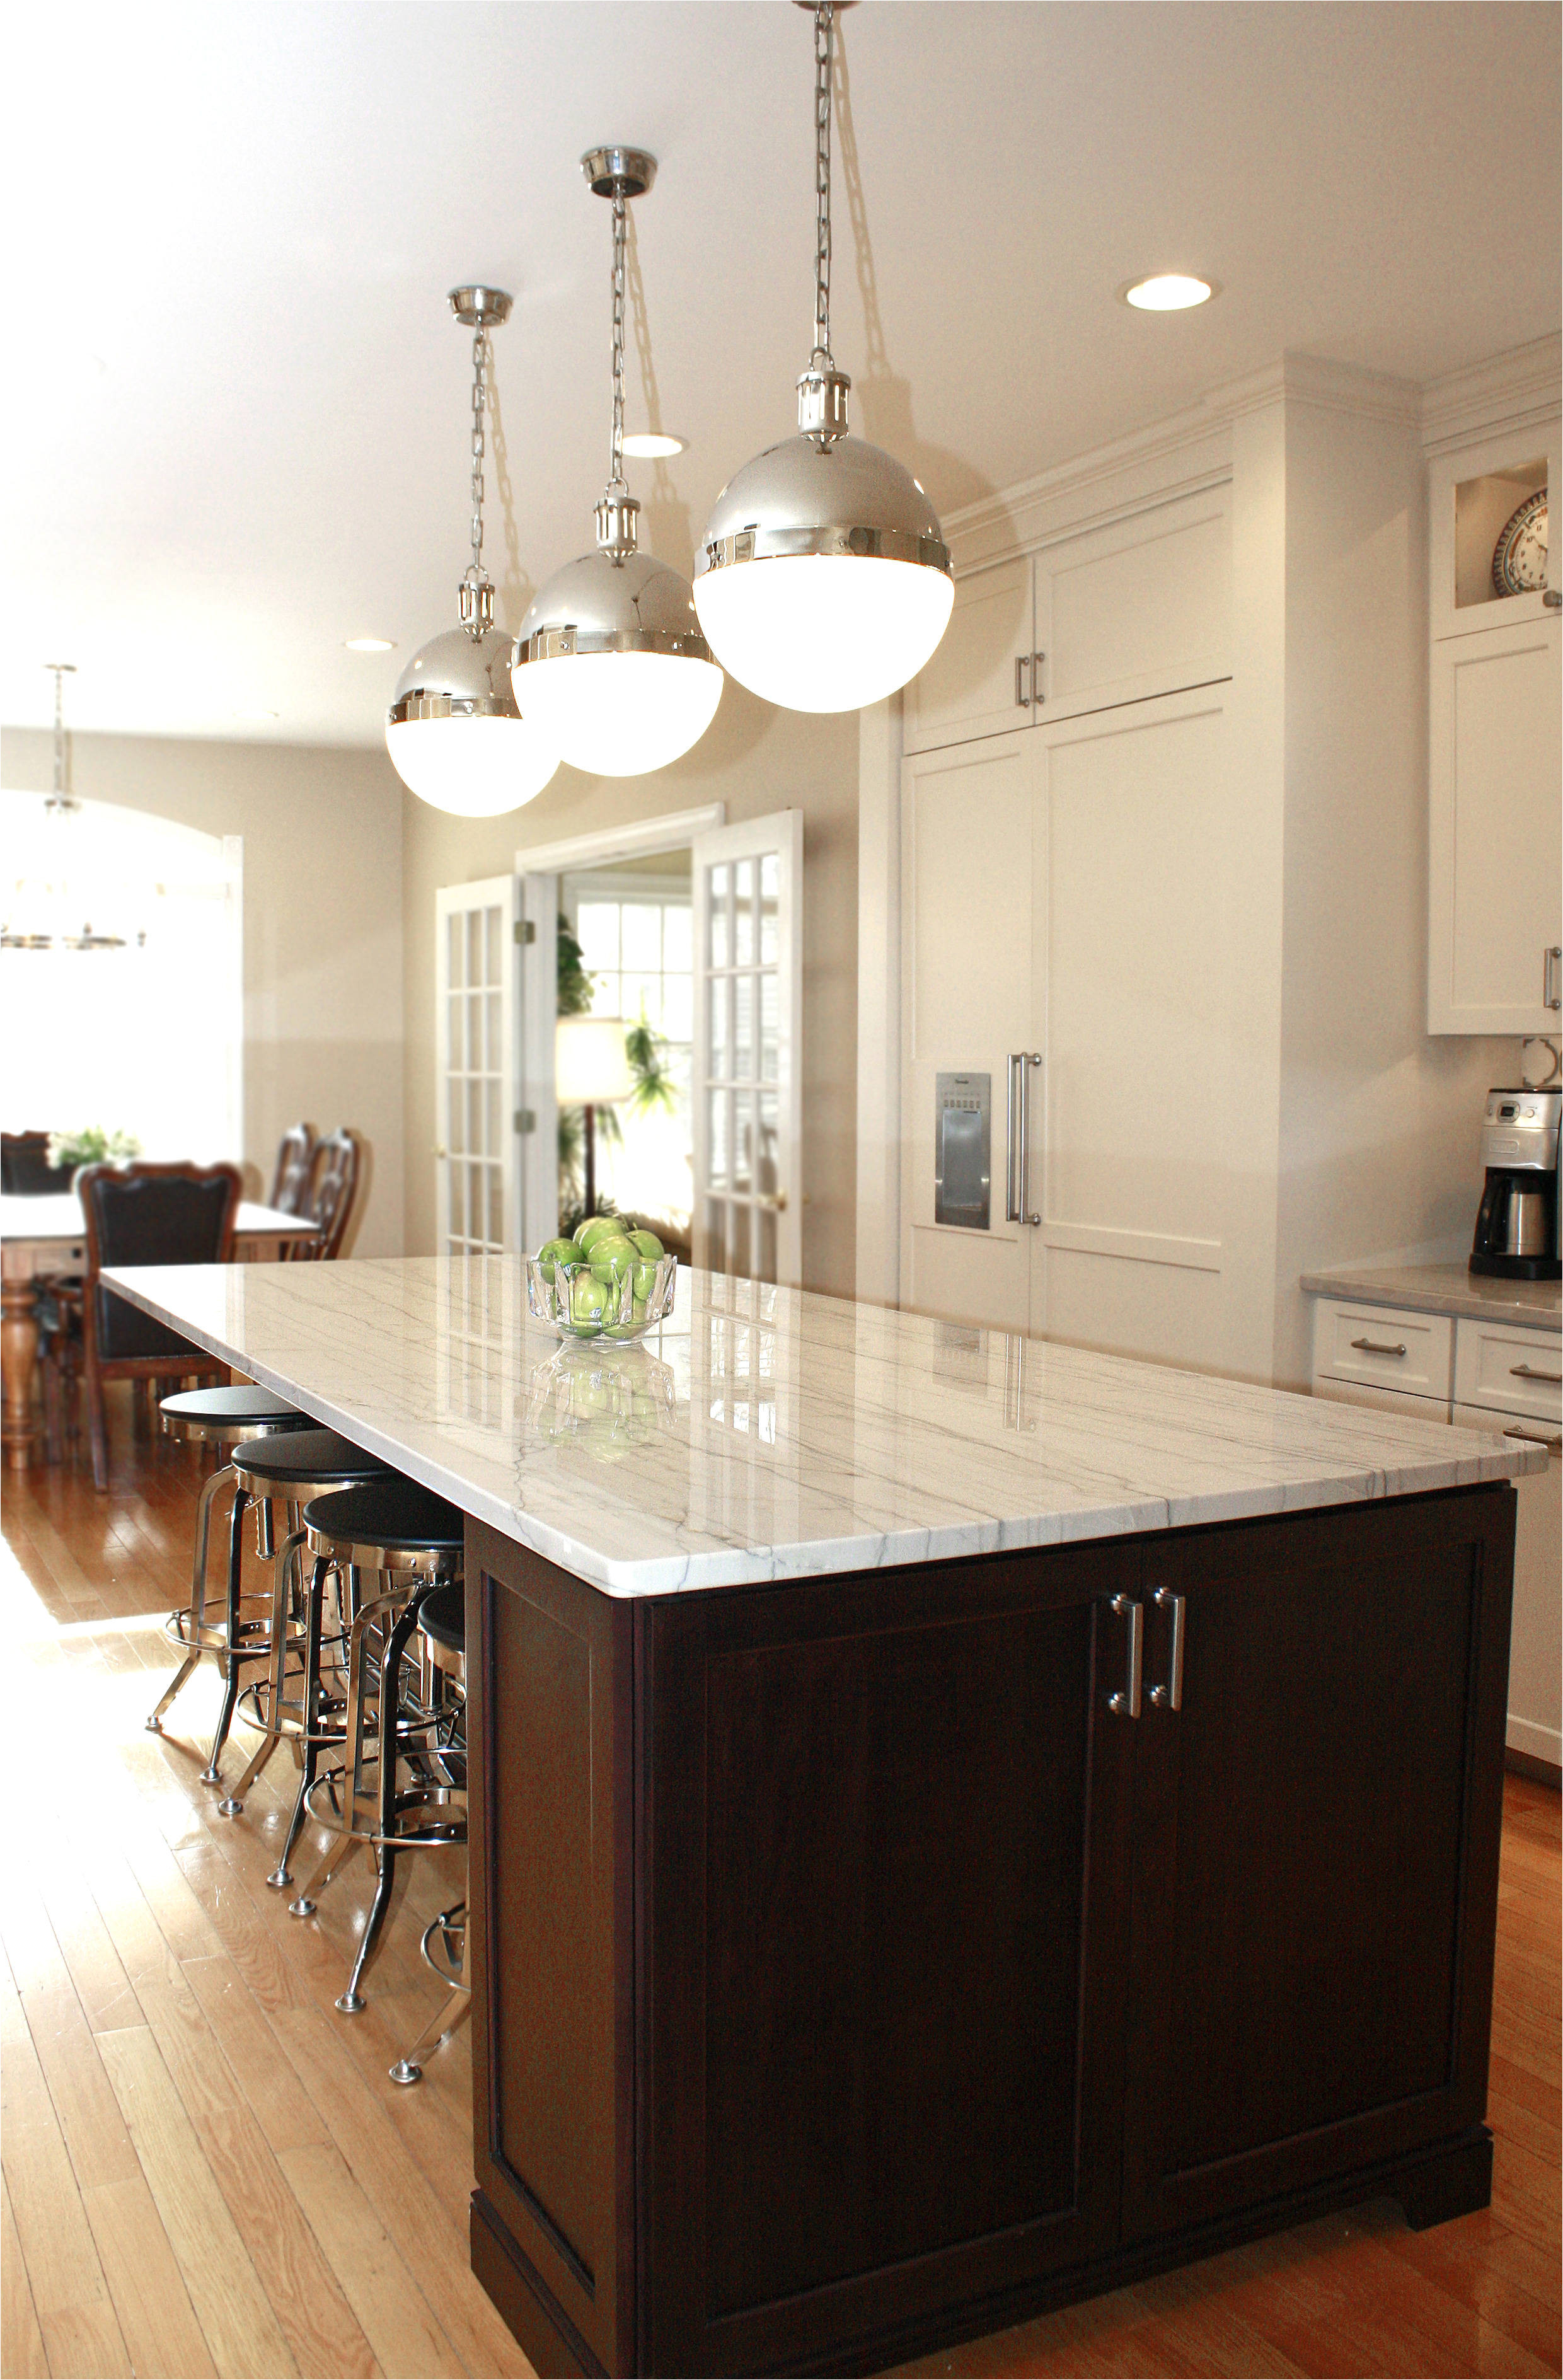 compare quartz vs granite countertops best of fresh white granite countertops with white cabinets